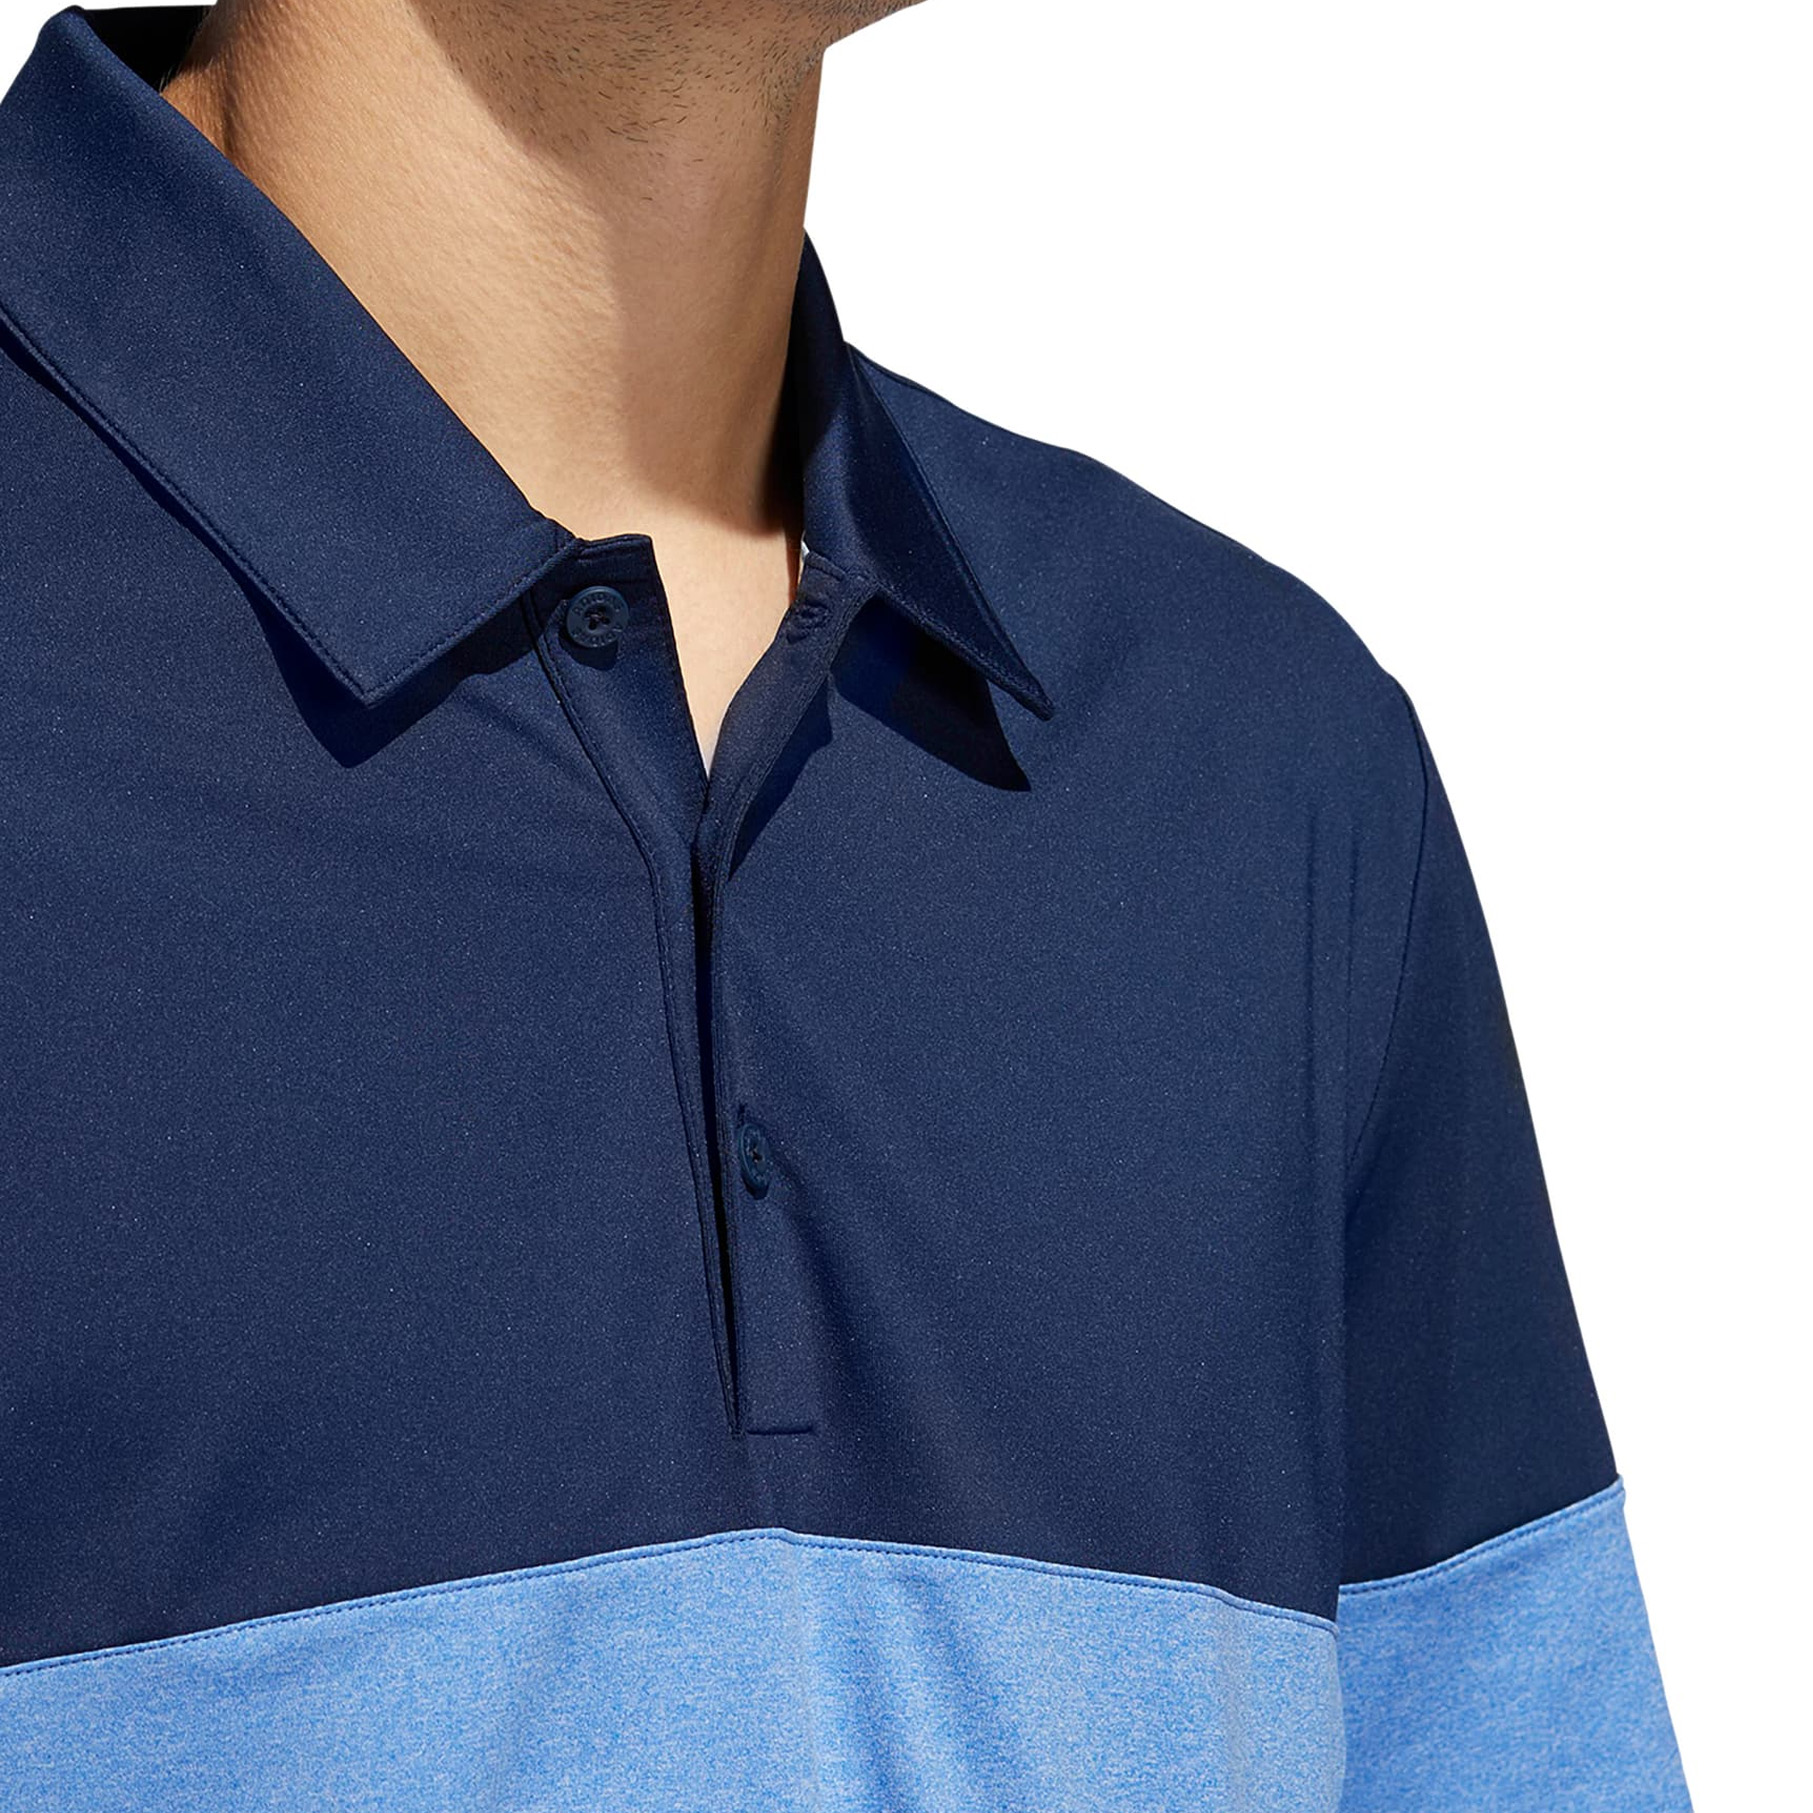 Adidas-Golf-Men-039-s-Ultimate-2-0-All-Day-Polo-Shirt-New thumbnail 12